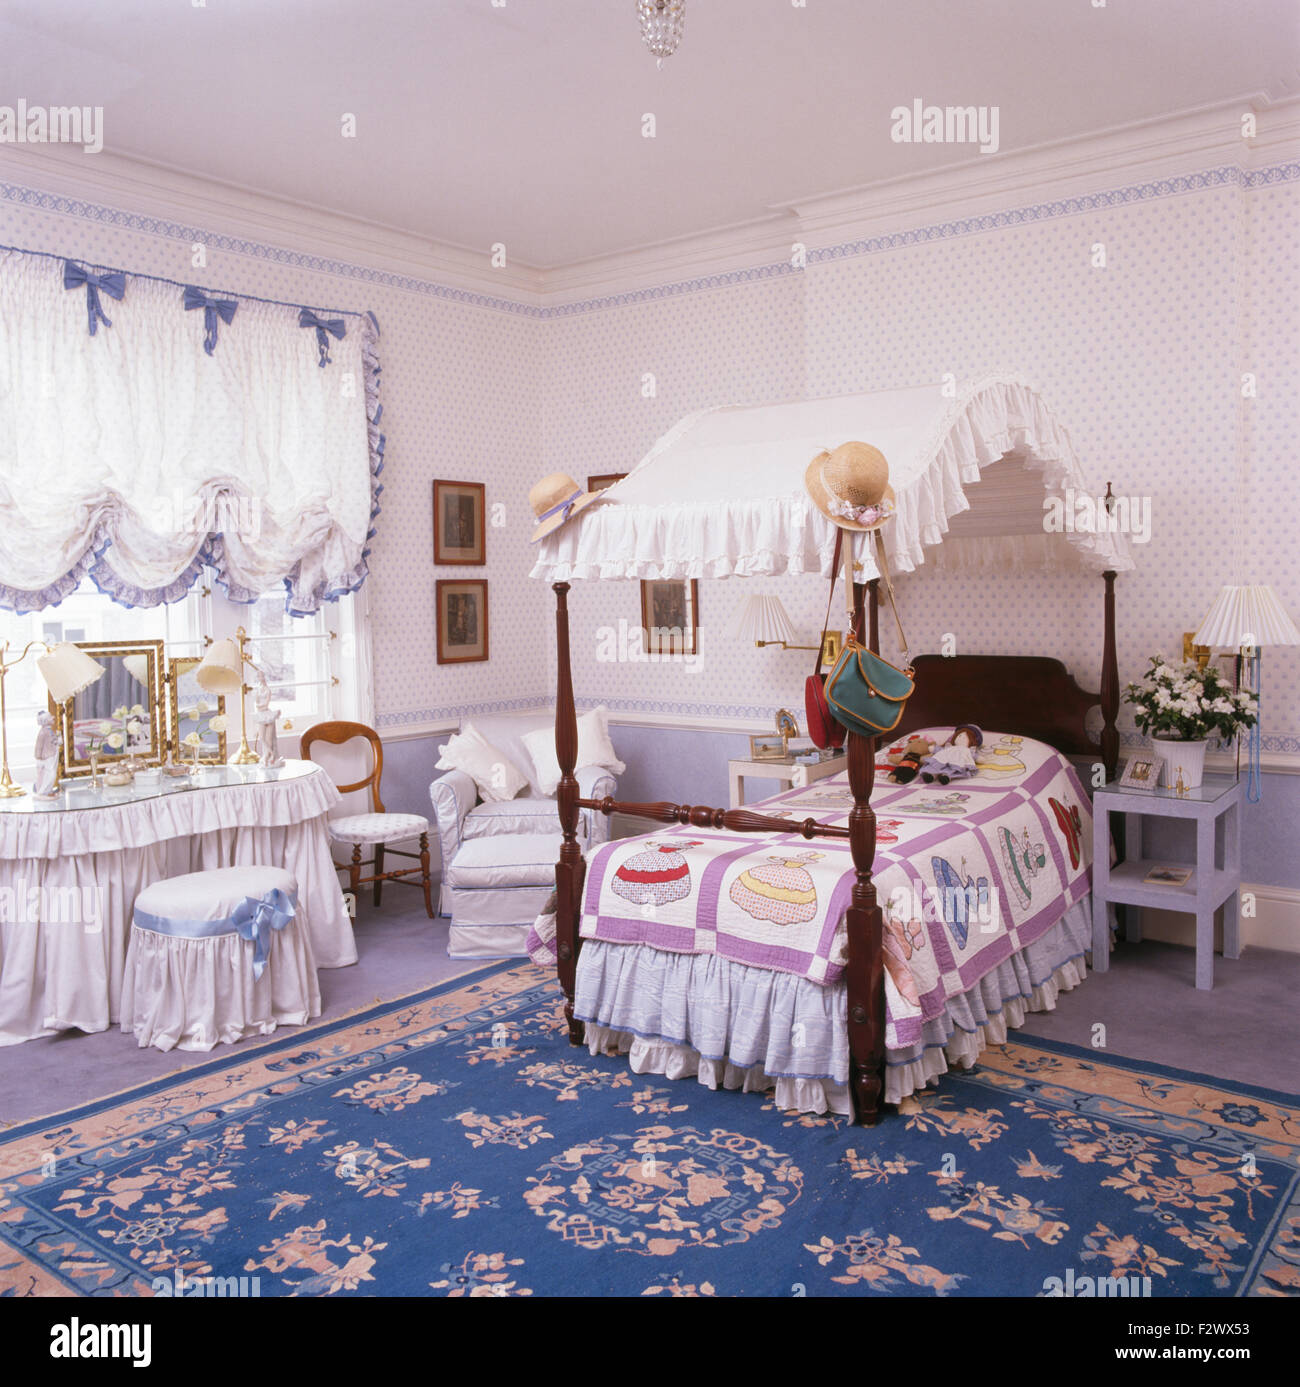 Miniature Four Poster Bed And Kidney Dressing Table With White Drapes In  Childu0027s Opulent Eighties Bedroom